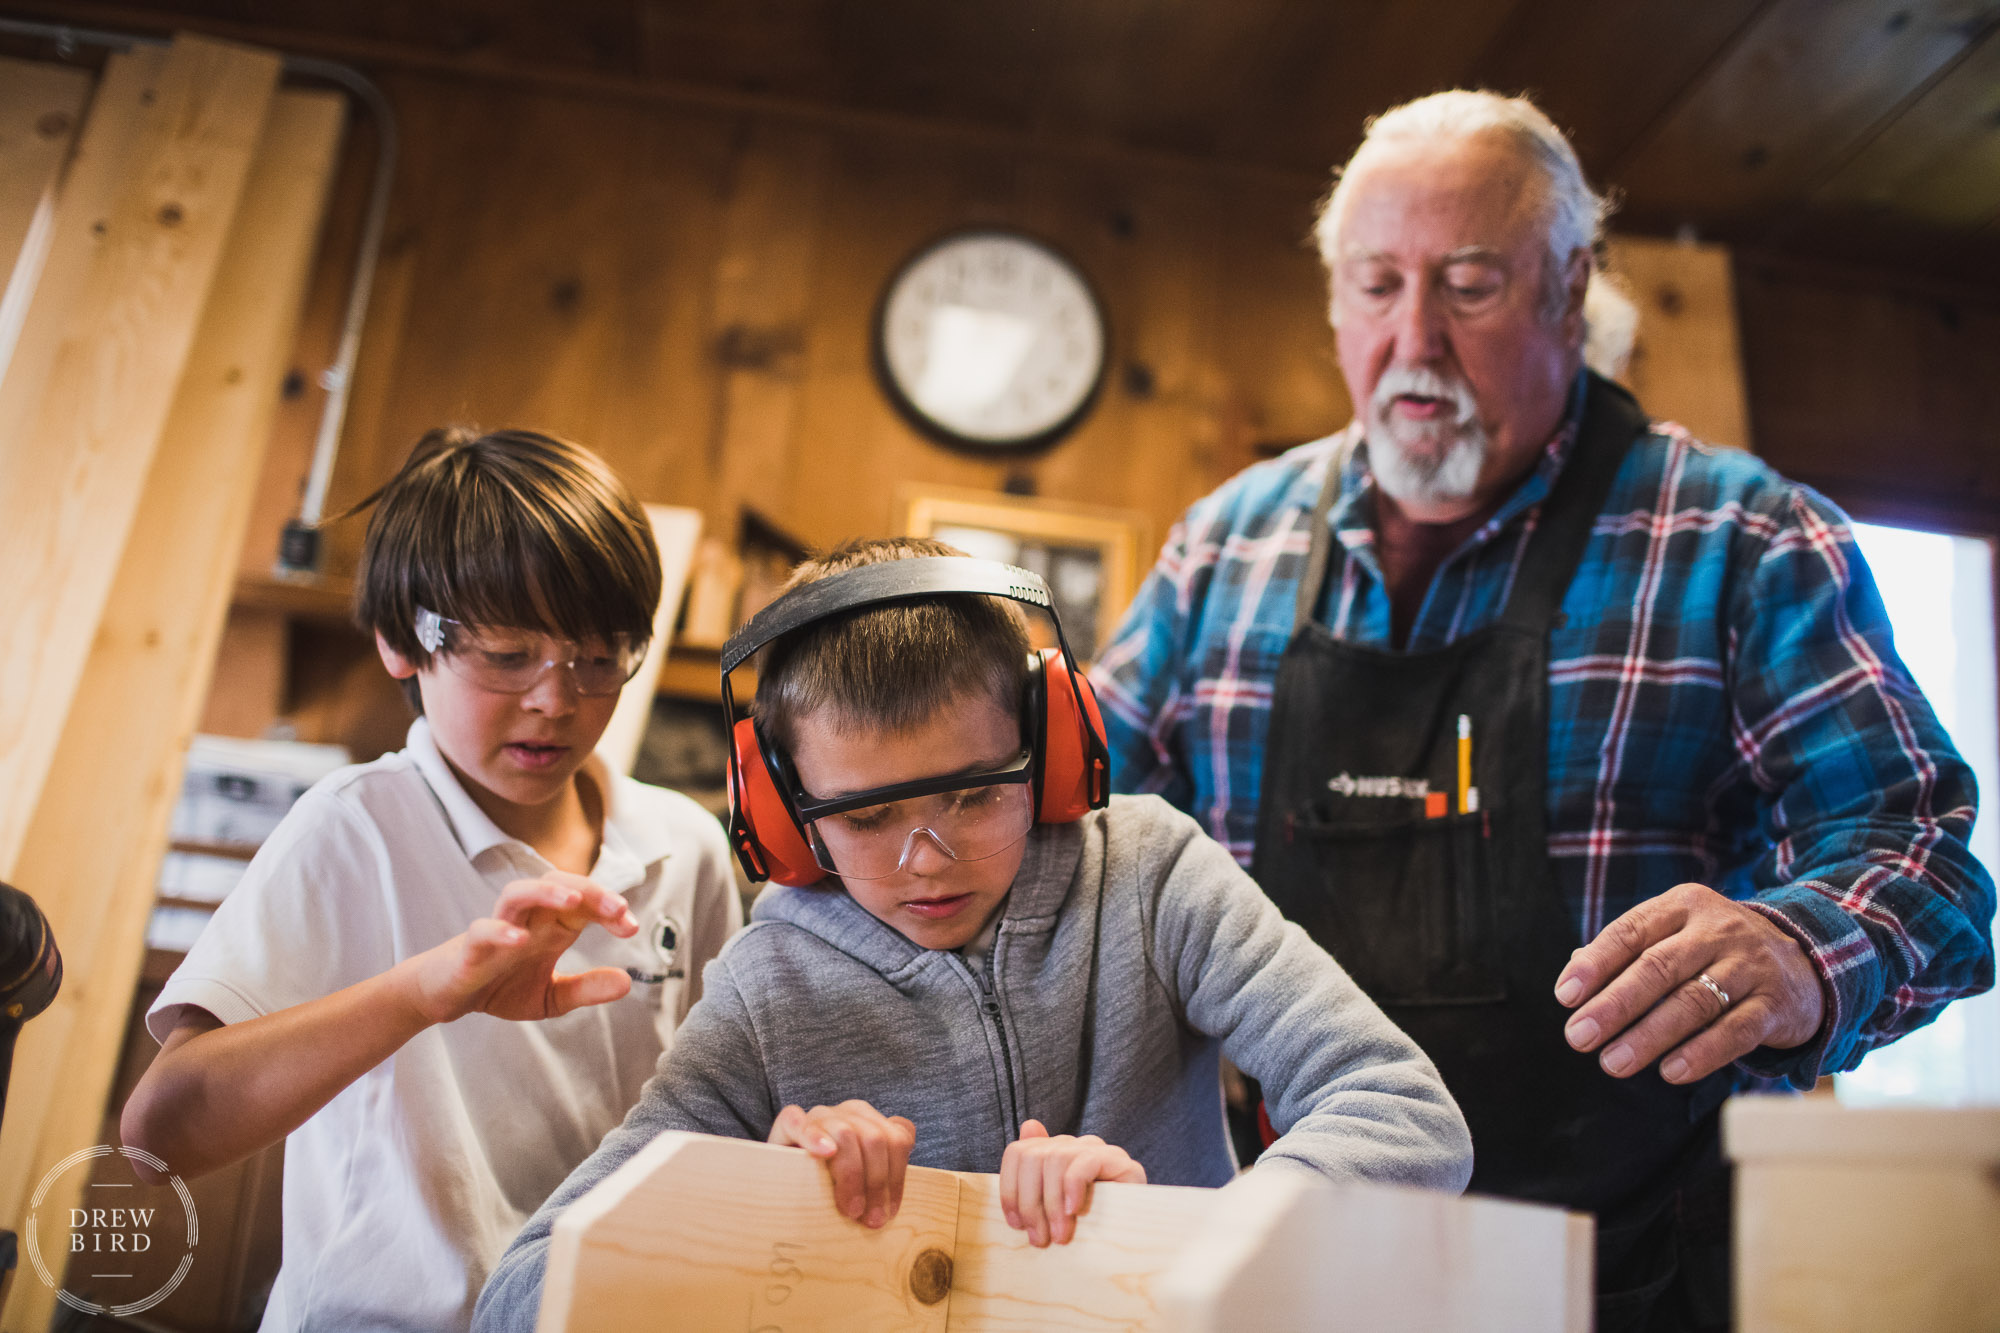 A man teacher helps two grade school students in shop class at the Hillbrook School in Los Gatos, California. San Francisco education brand photography and San Jose independent school photographer Drew Bird.